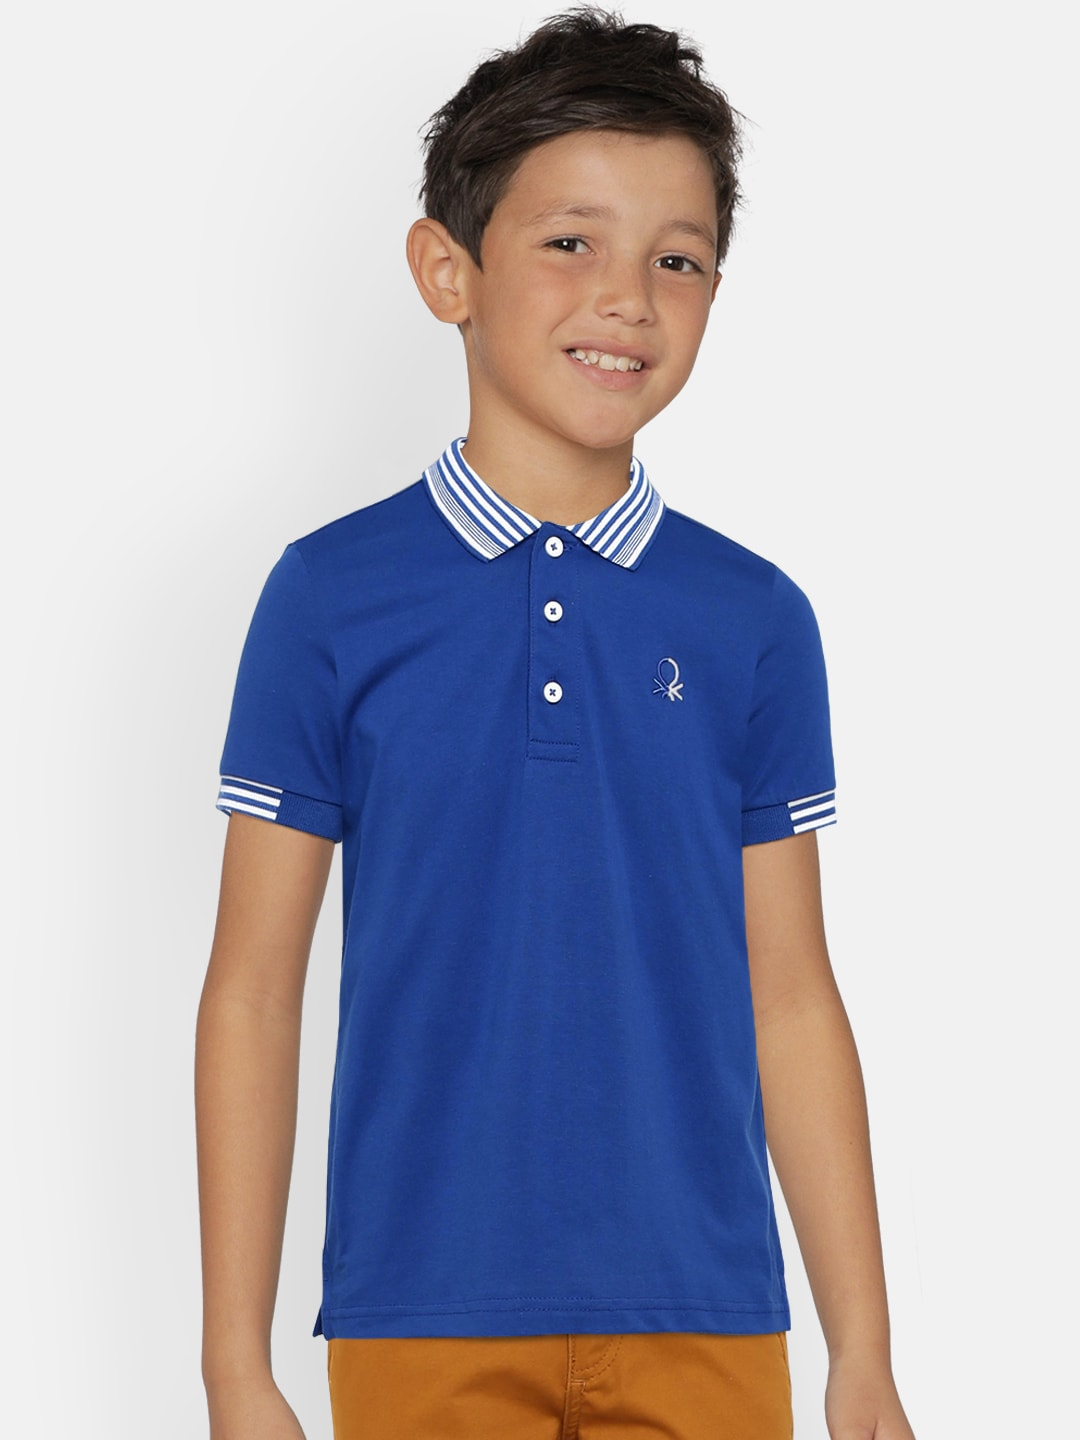 64a5d5fda United Colors Of Benetton Kids - Buy United Colors Of Benetton Kids online  in India